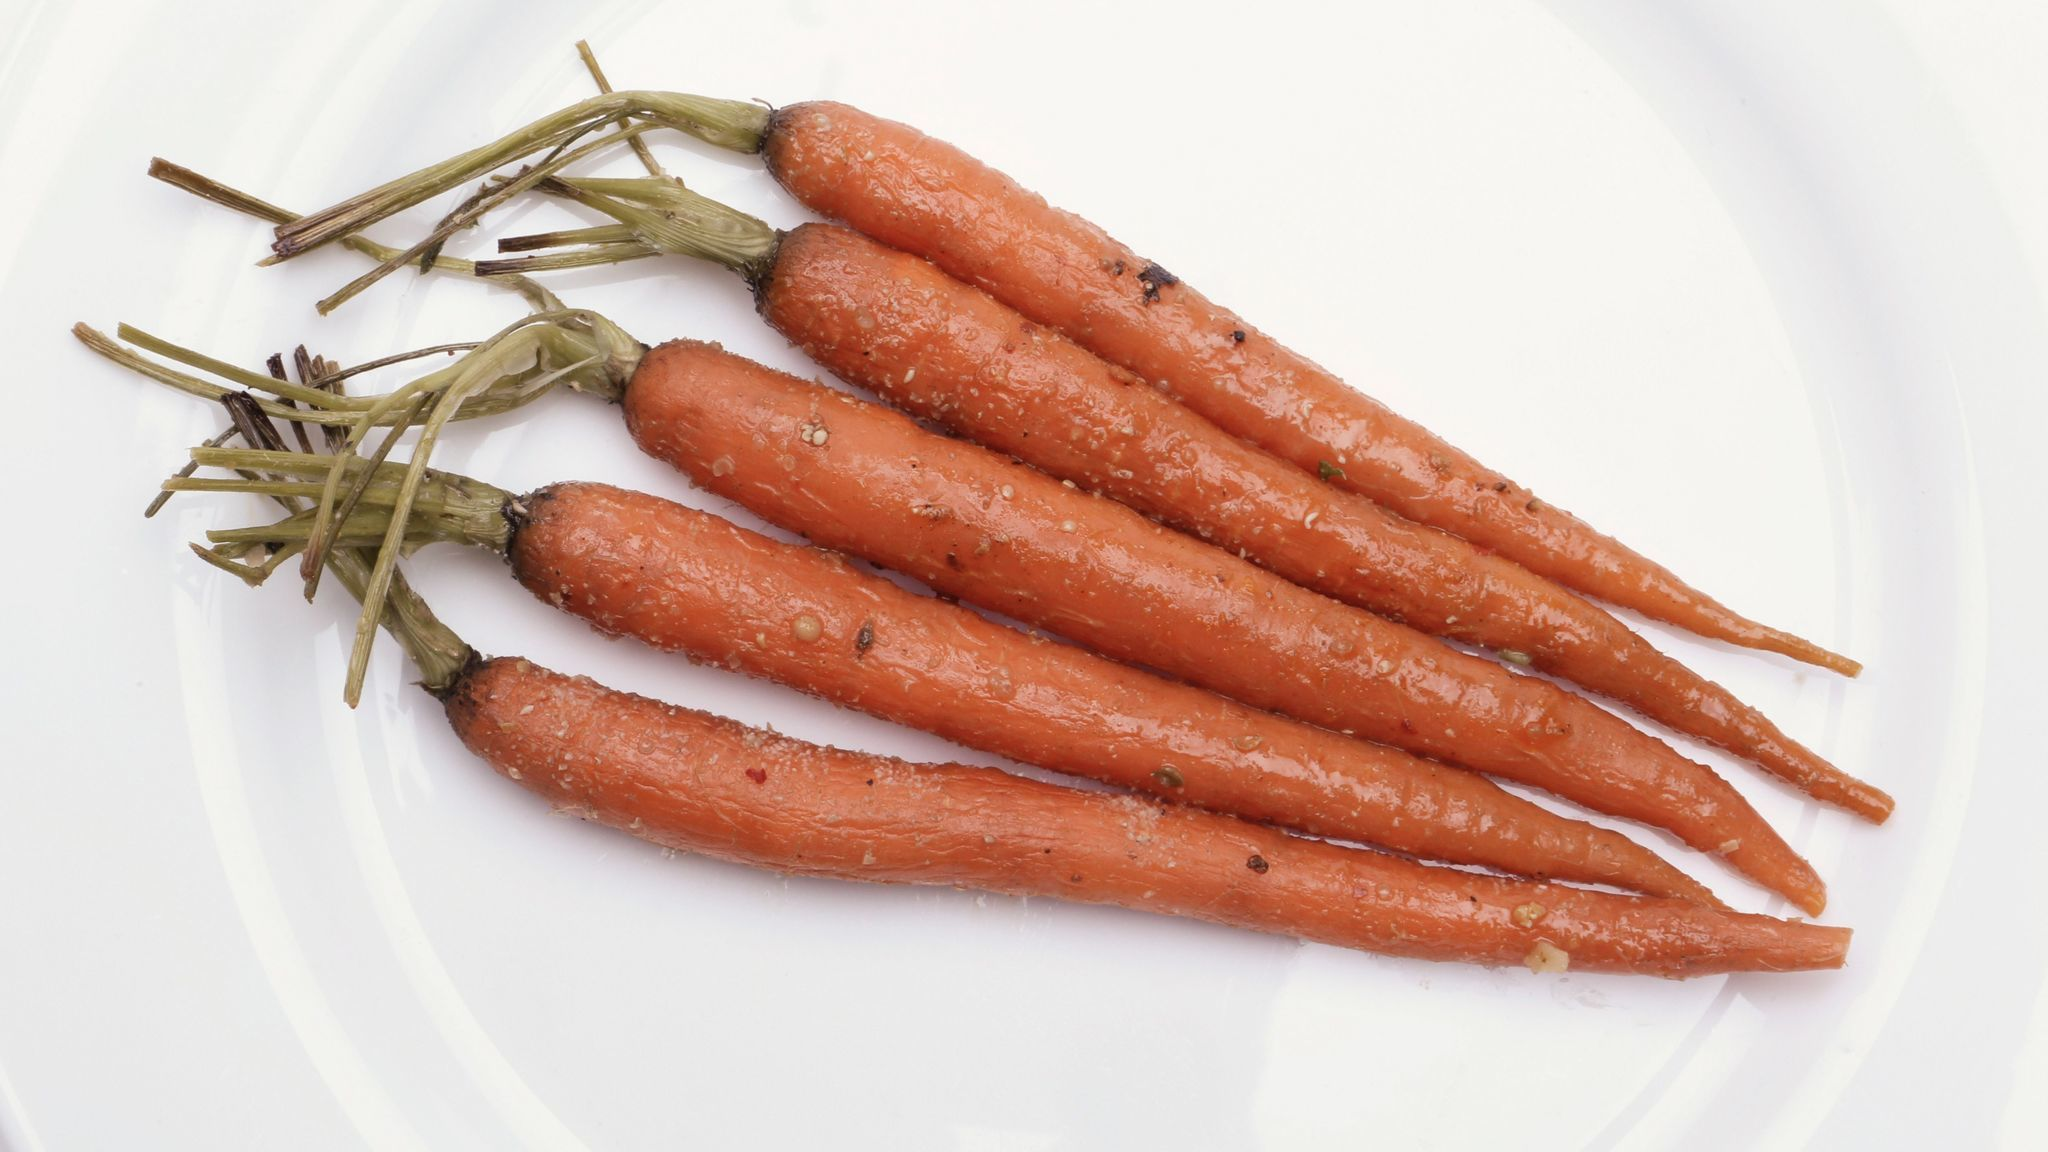 Carrots are a classic source of vitamin A.